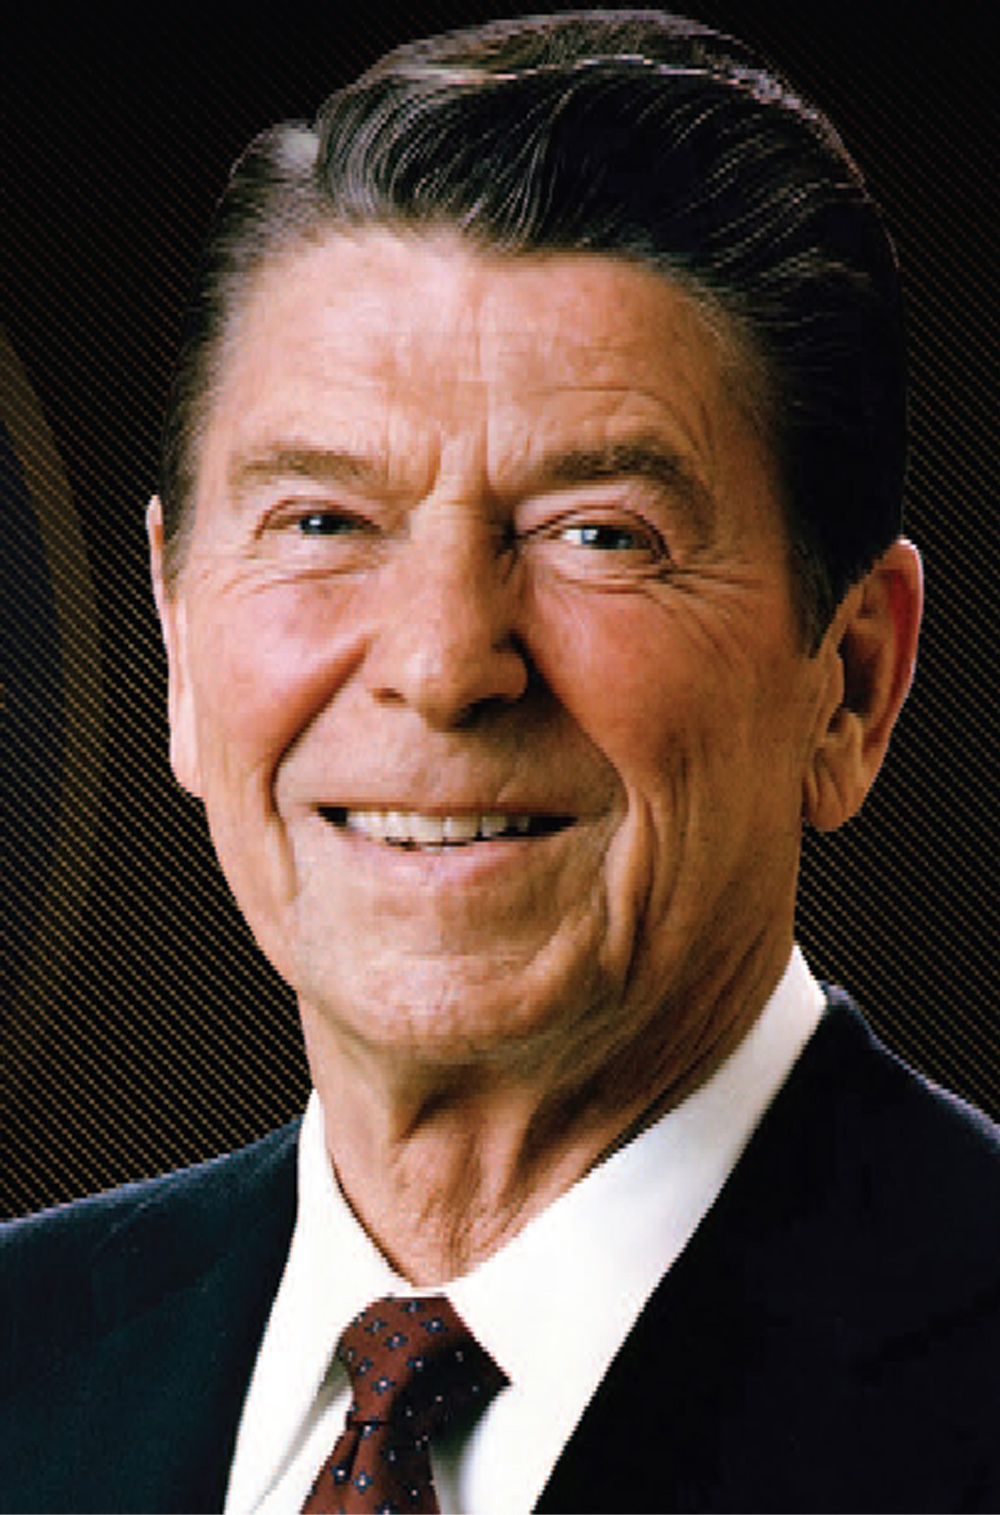 The Ronald Reagan Presidential Foundation has planned many celebratory events in order to commemorate the 100th anniversary of Ronald Reagan's birth. - mug_ronaldreagan